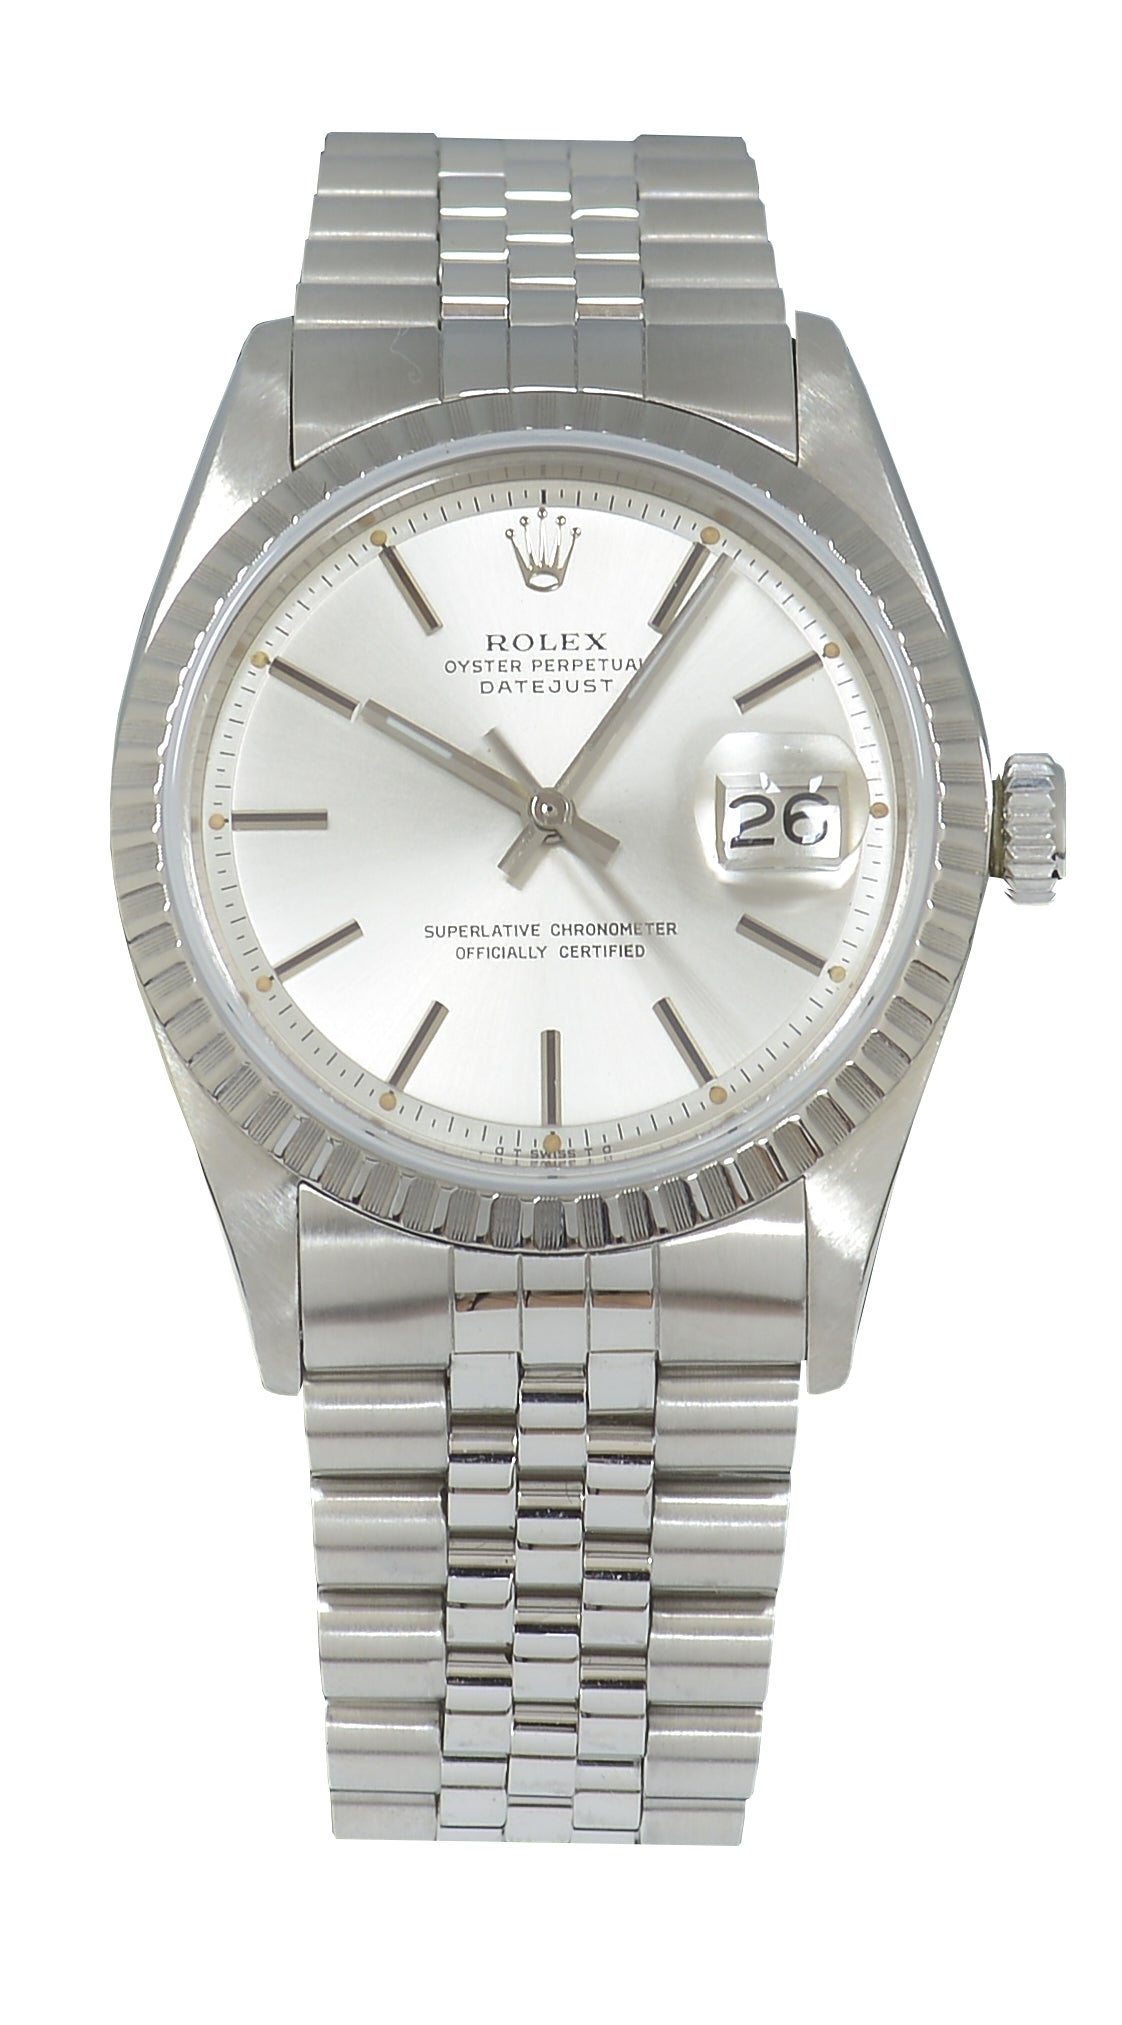 Rolex Datejust Steel Watch with Silver Dial, Ref: 1603 (1978) Papers